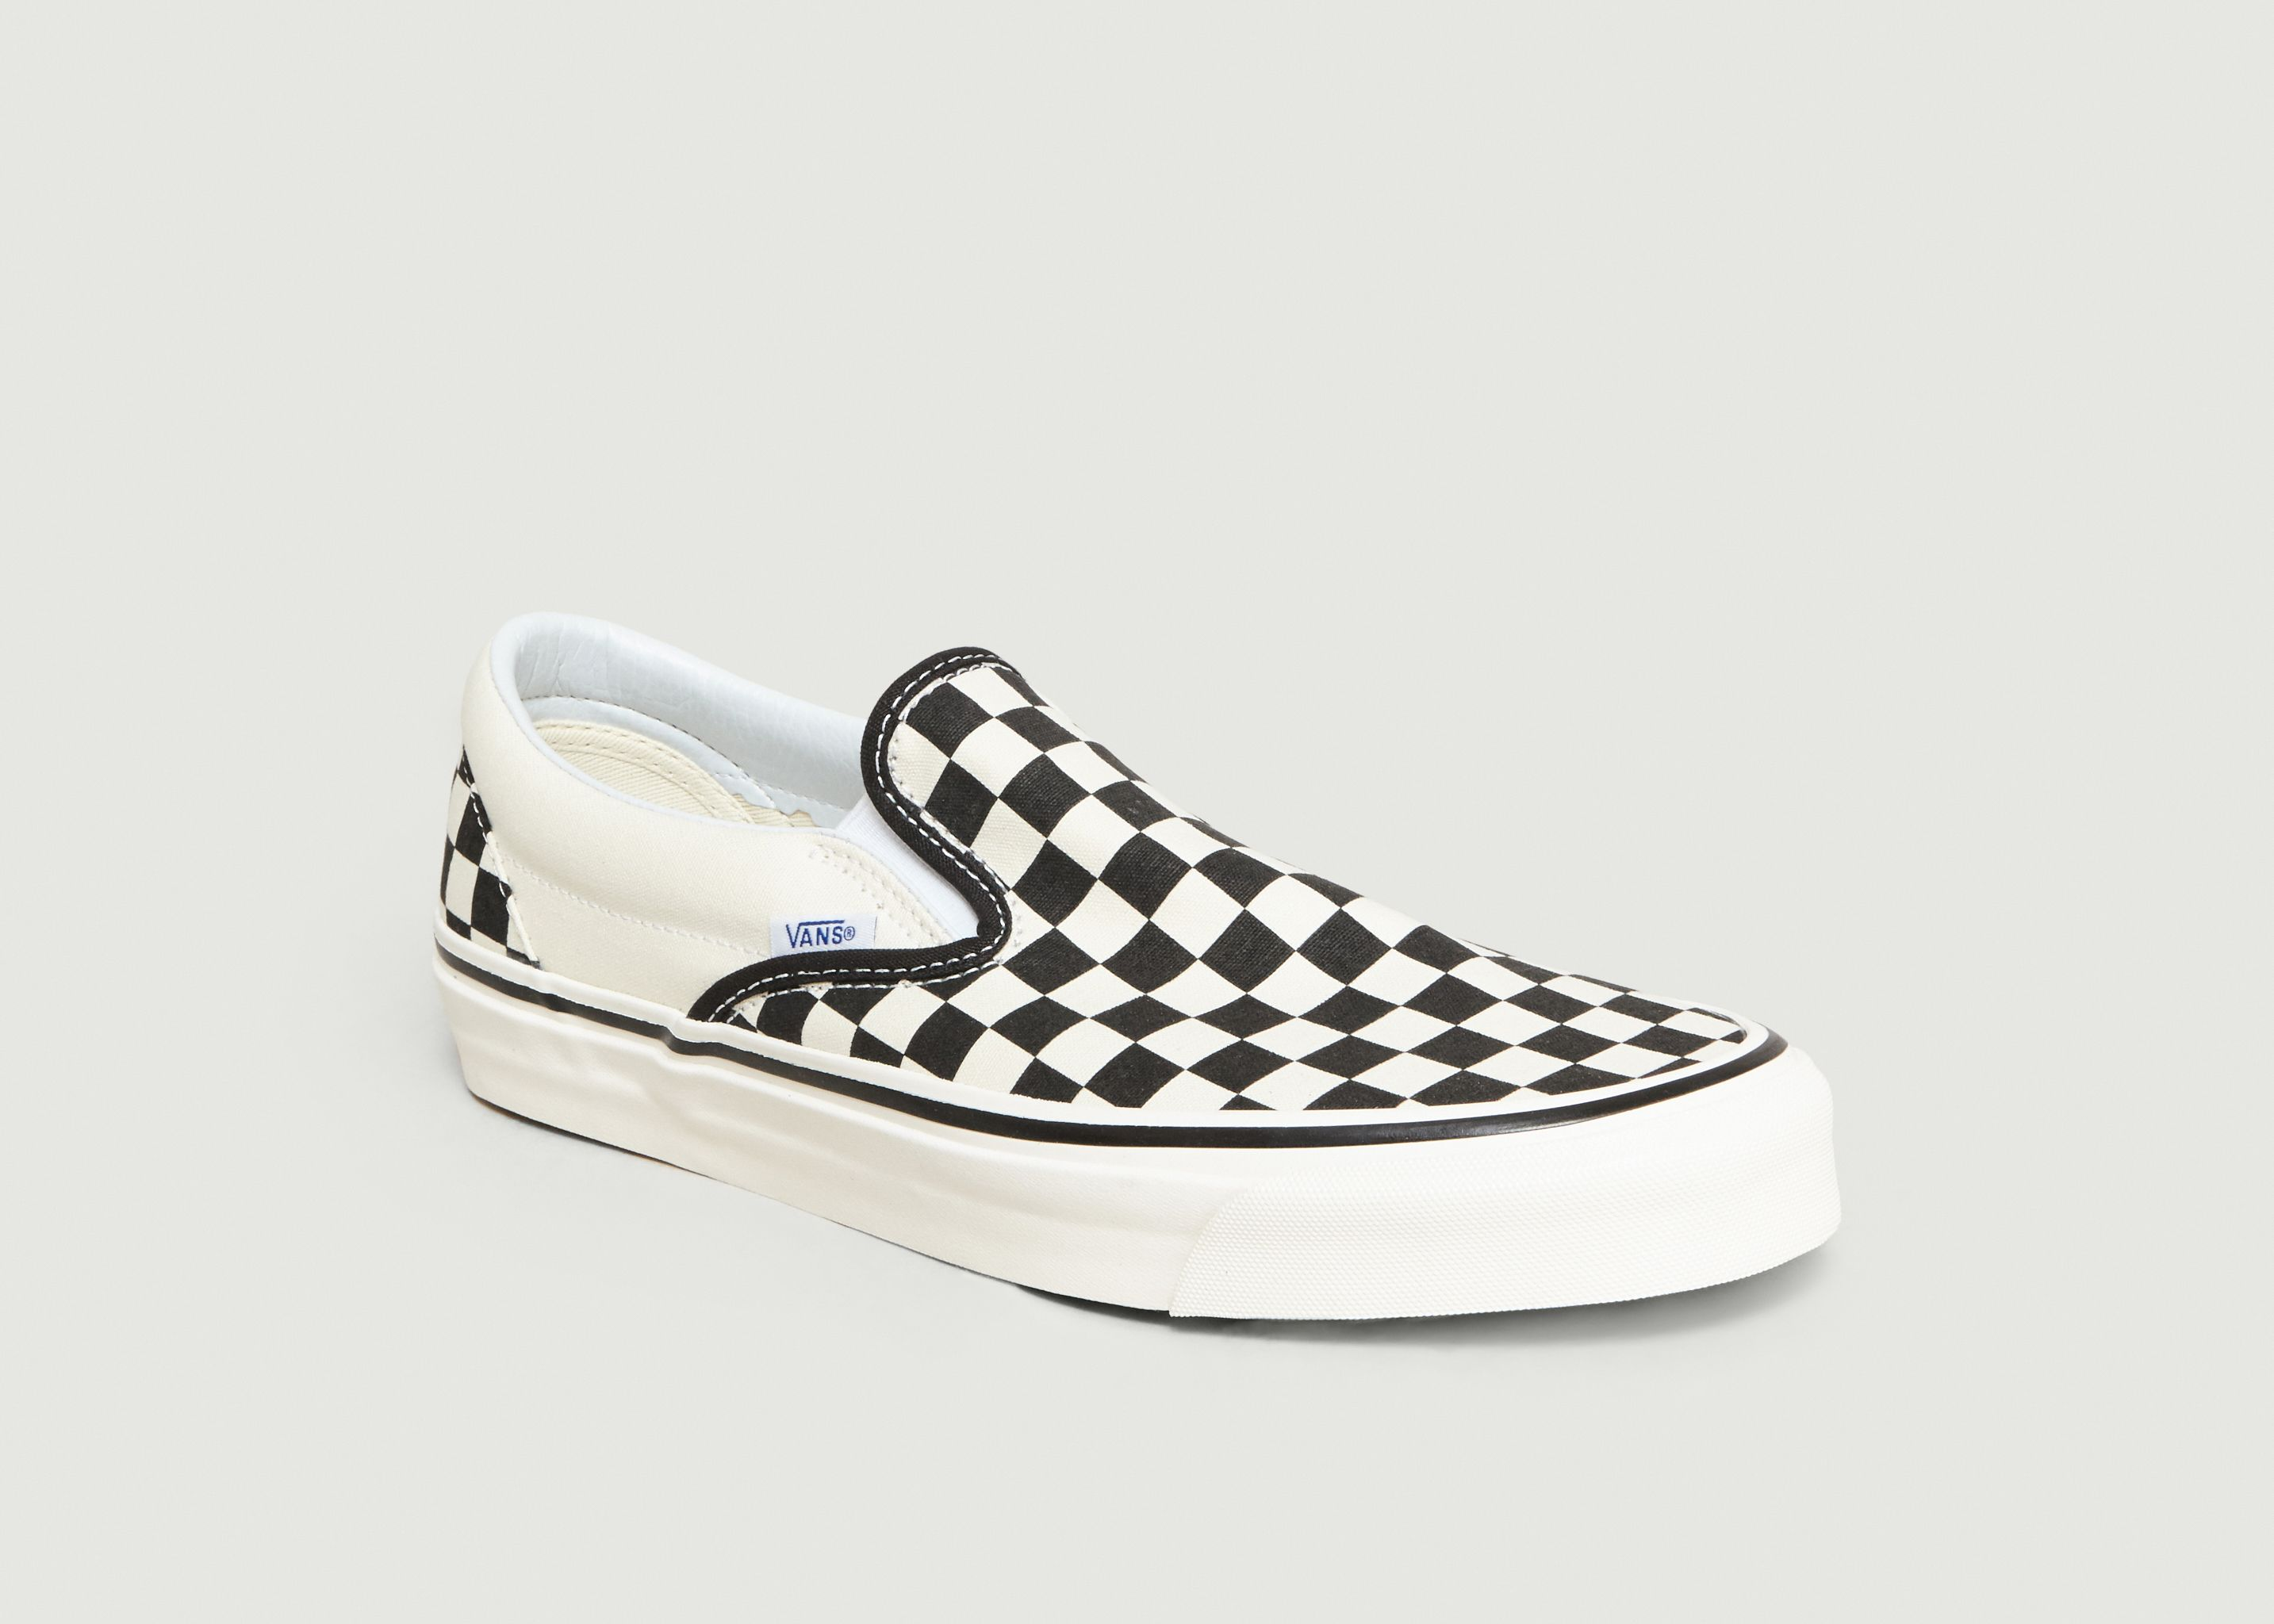 e146b0fb121a Anaheim Slip On Skate Shoe BlackVans